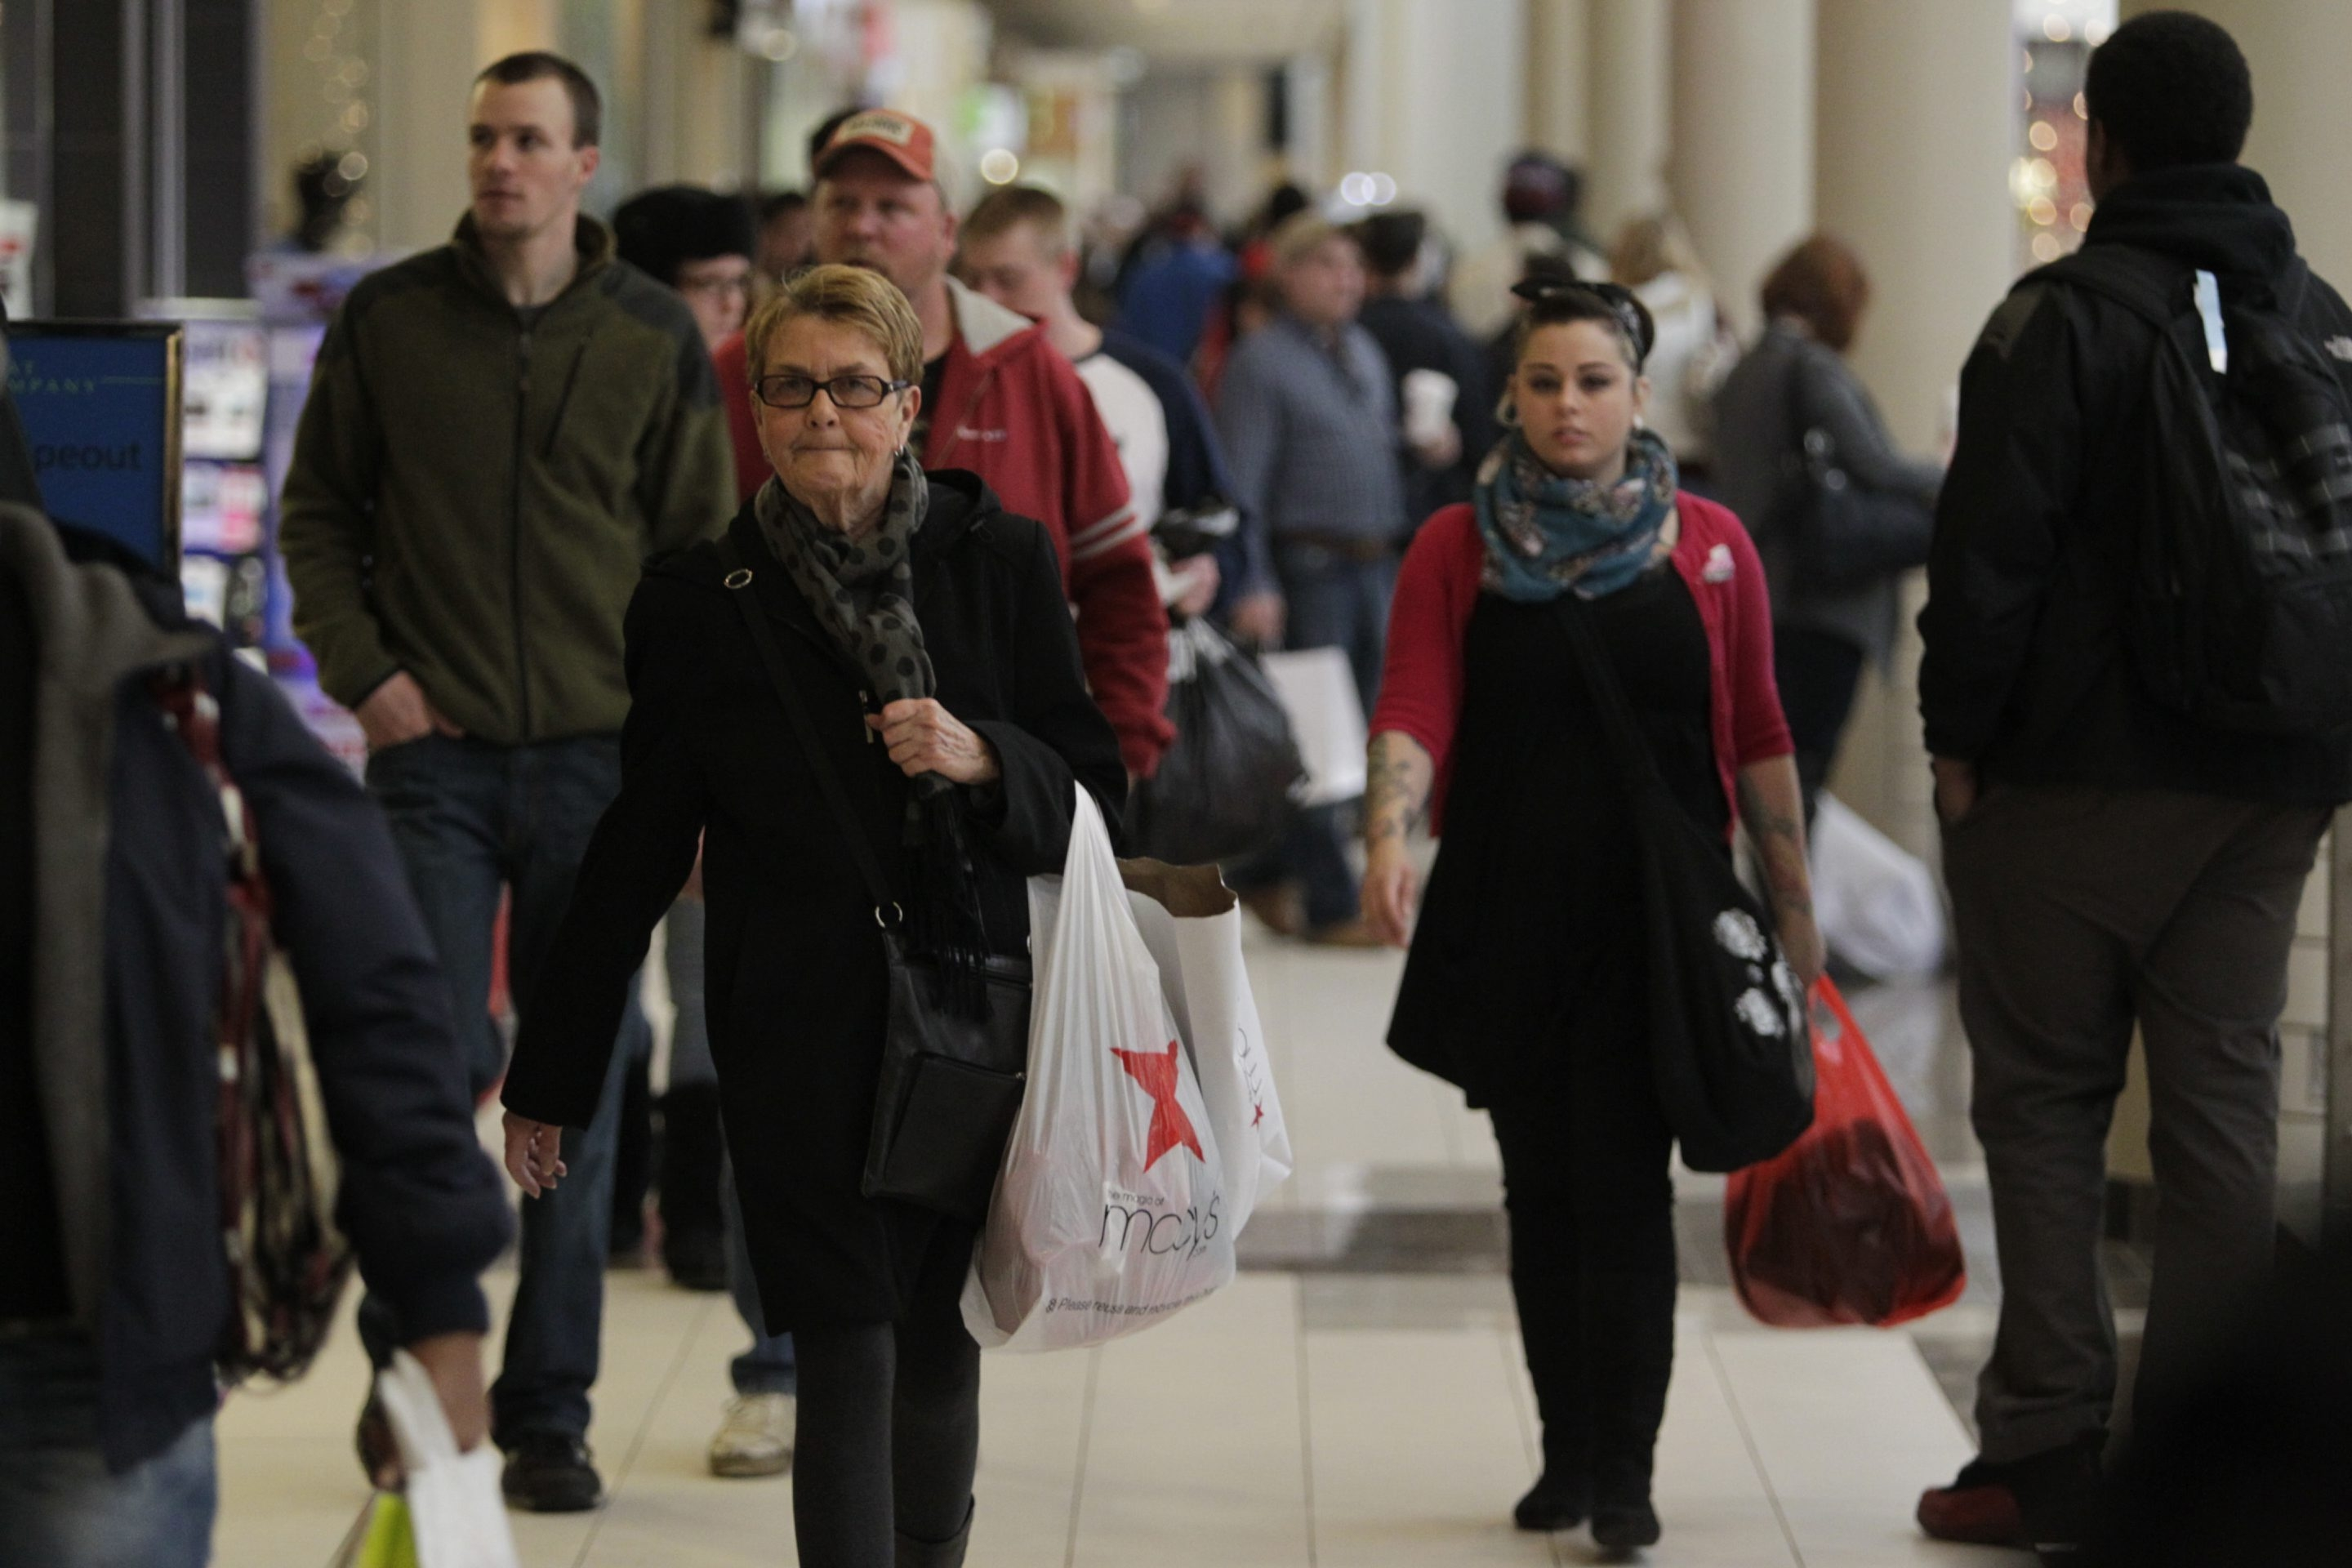 The Walden Galleria in Cheektowaga was packed with shoppers chasing the last of their holiday gifts on Saturday.